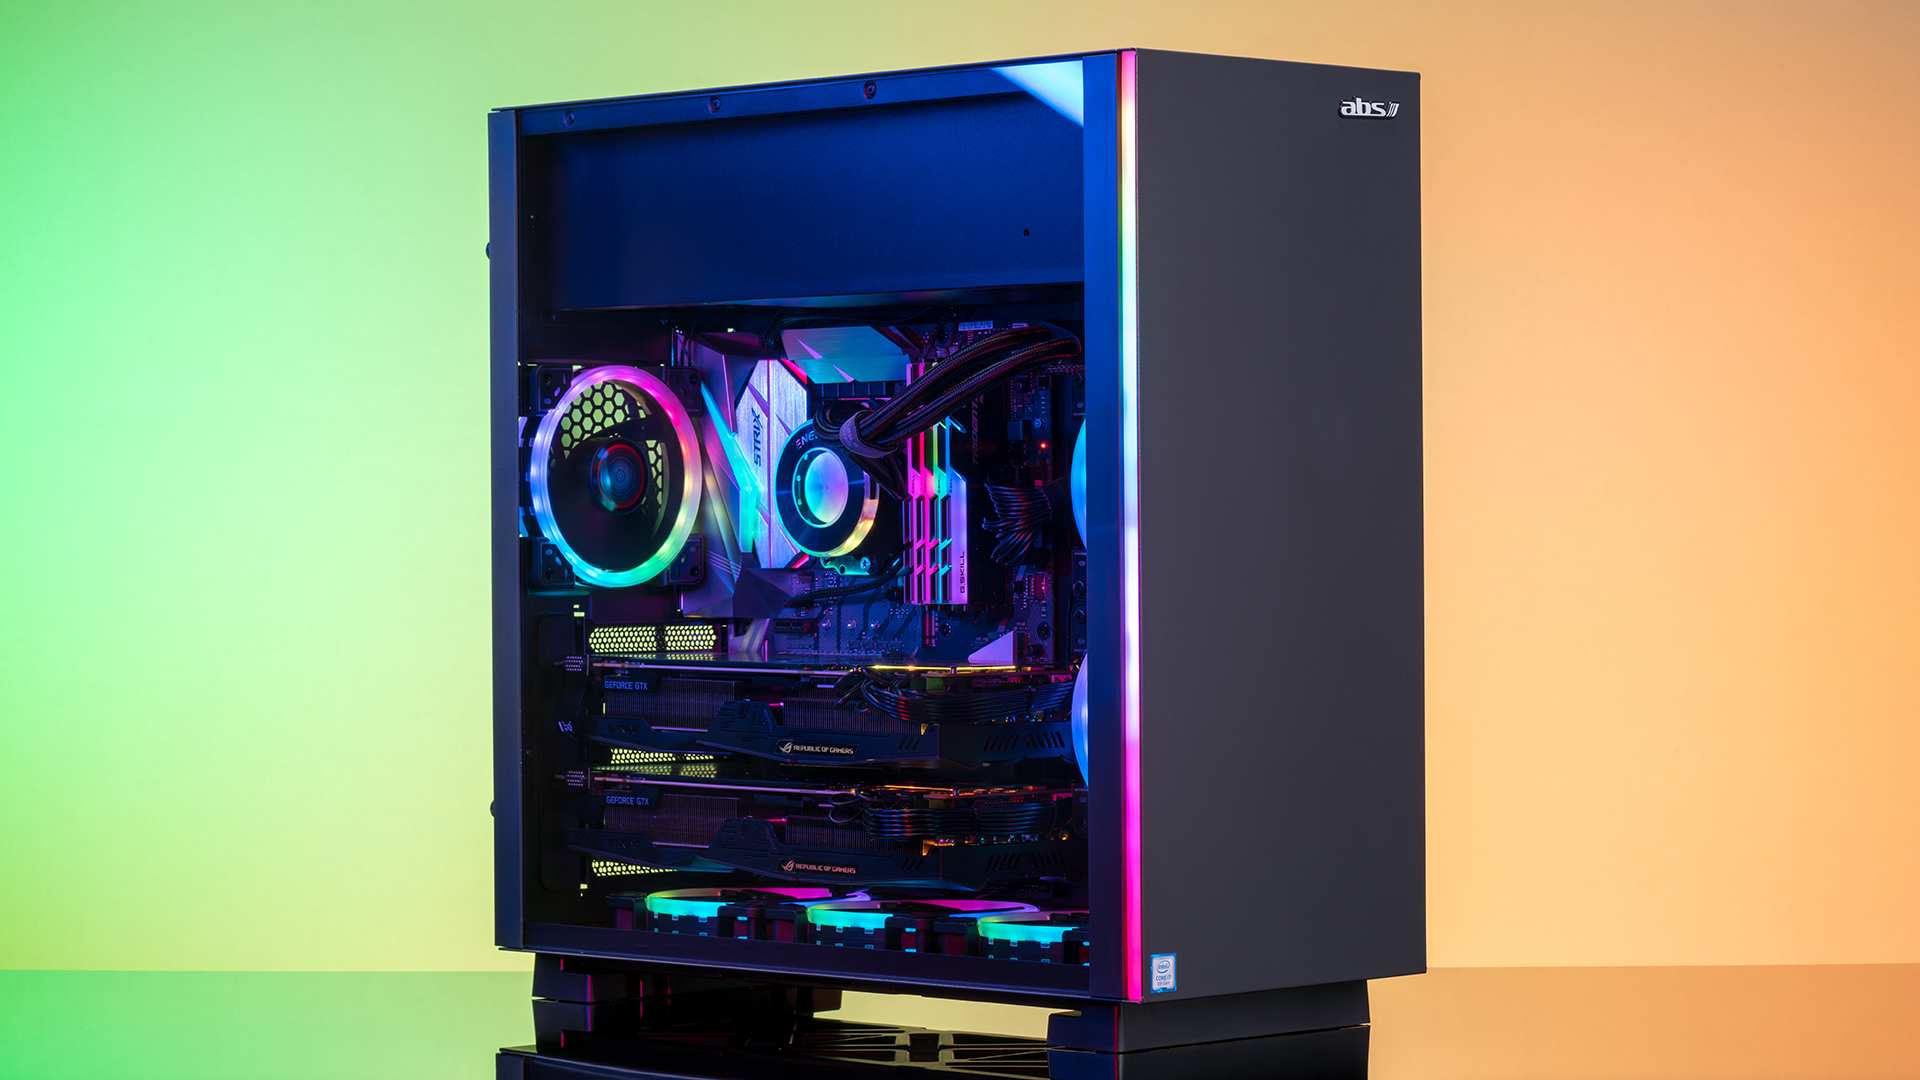 Joining Rosewill's craftsmanship and eye for design with the technical knowledge from ABS has led to something great in the Prism S500 pre-built gaming PC.